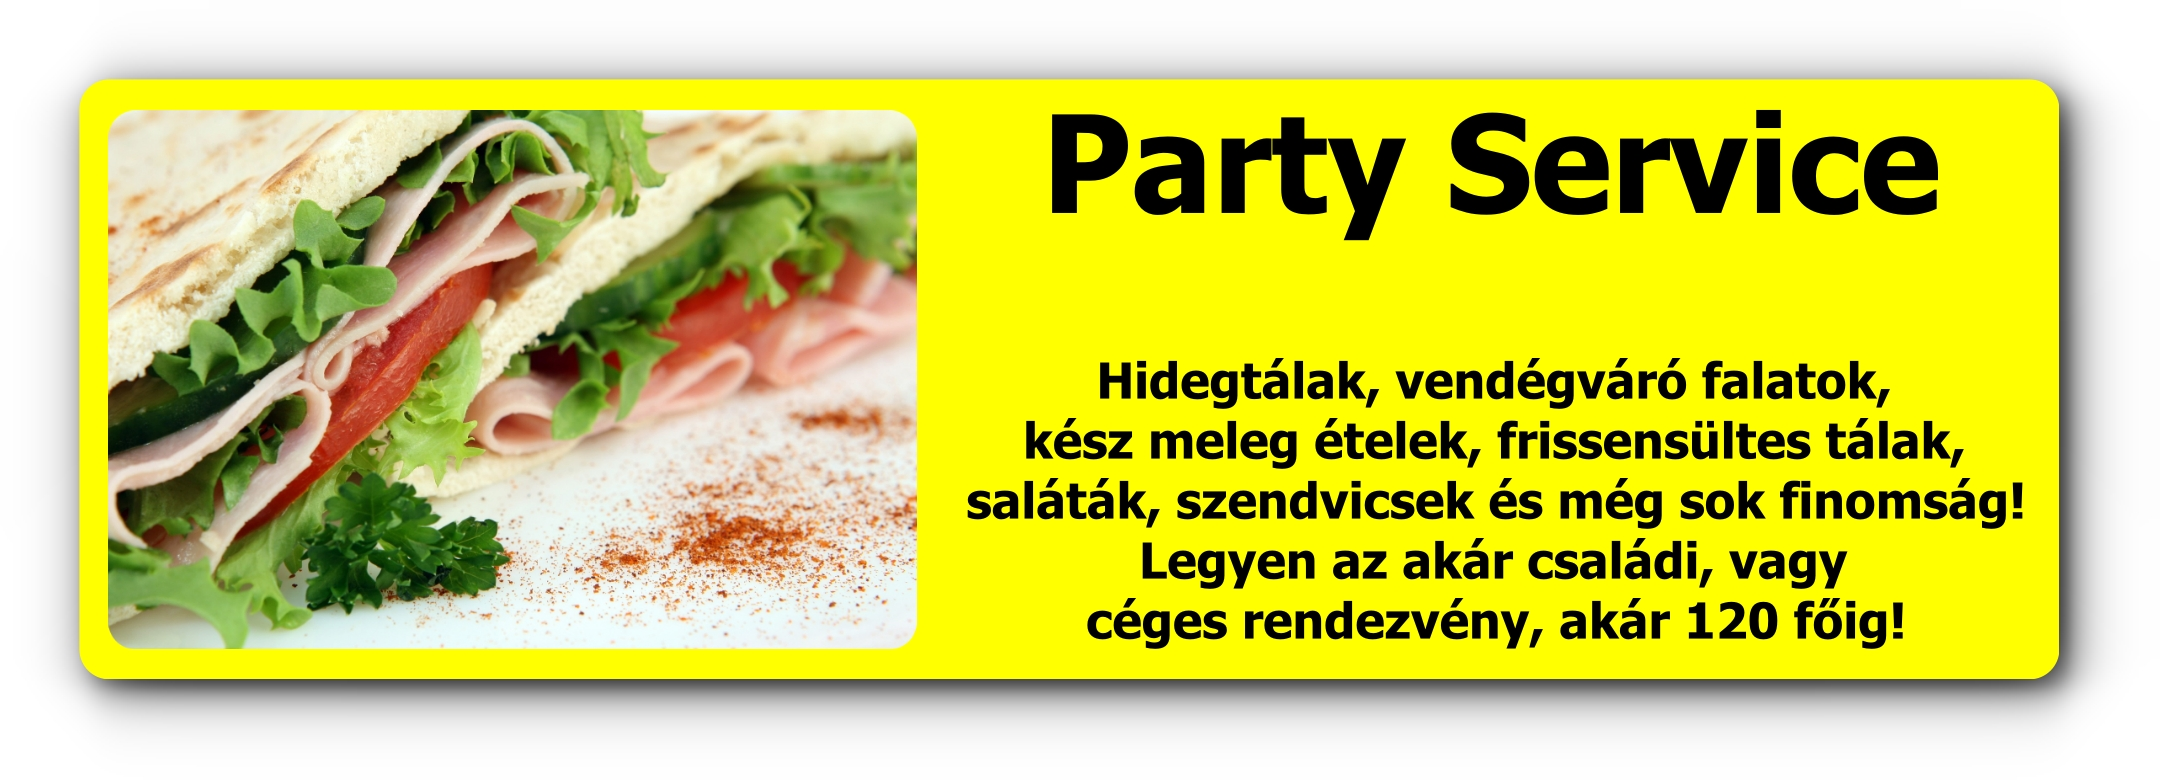 Gogohami_cta_button_party_sevice_blck_1980x600.jpg